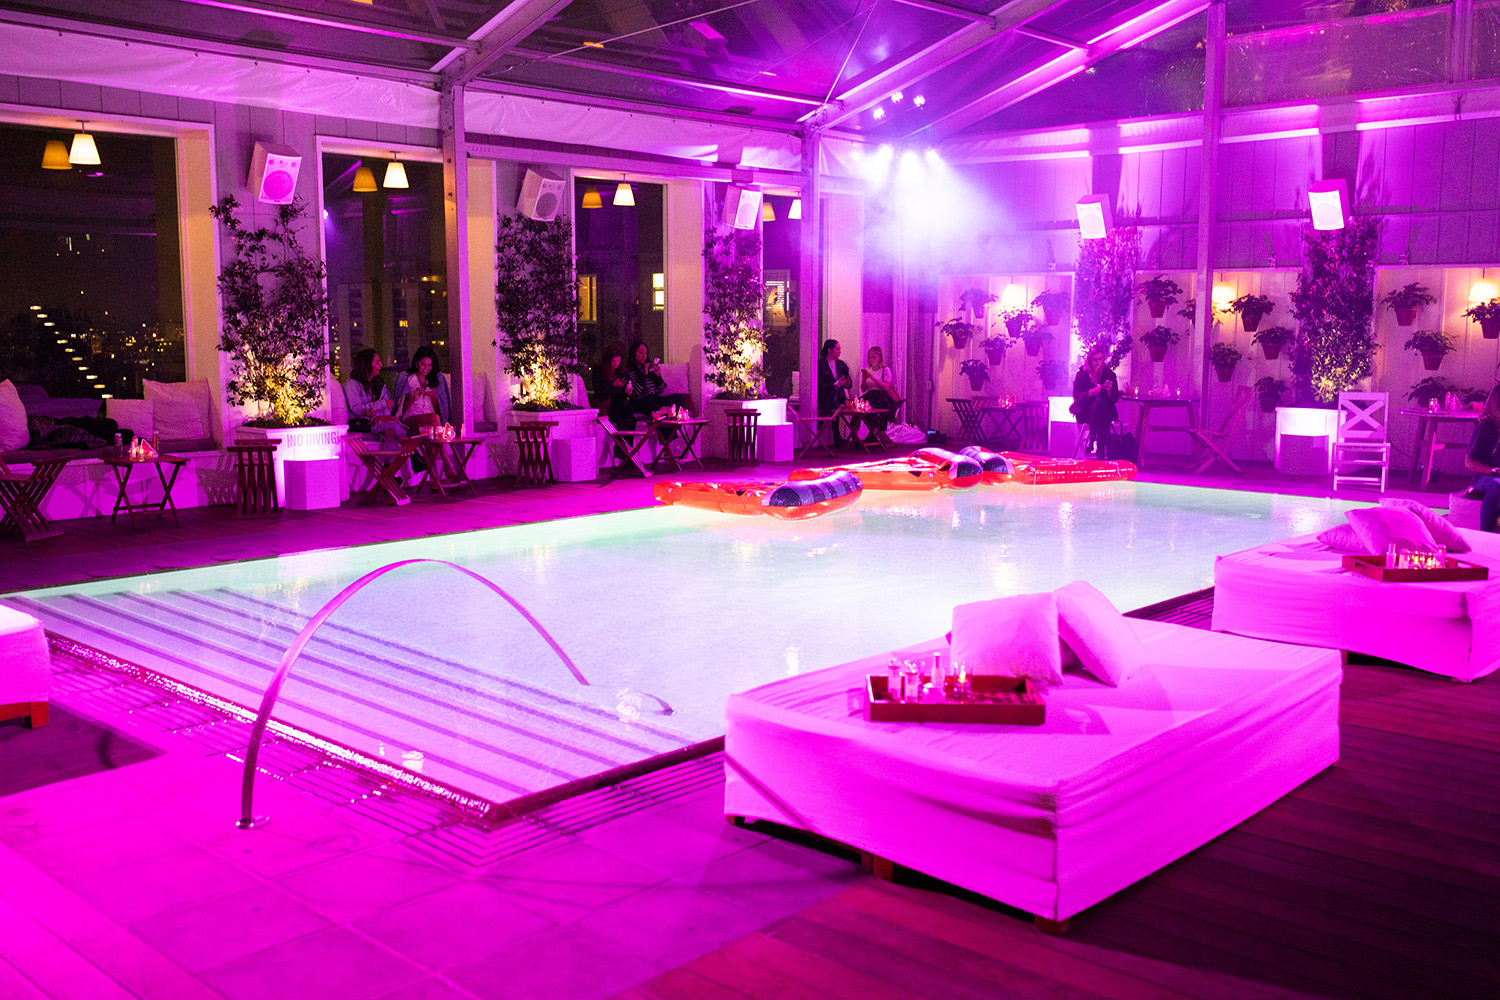 To celebrate the launch, the brand hosted a special party at Skybar at Mondrian Los Angeles.